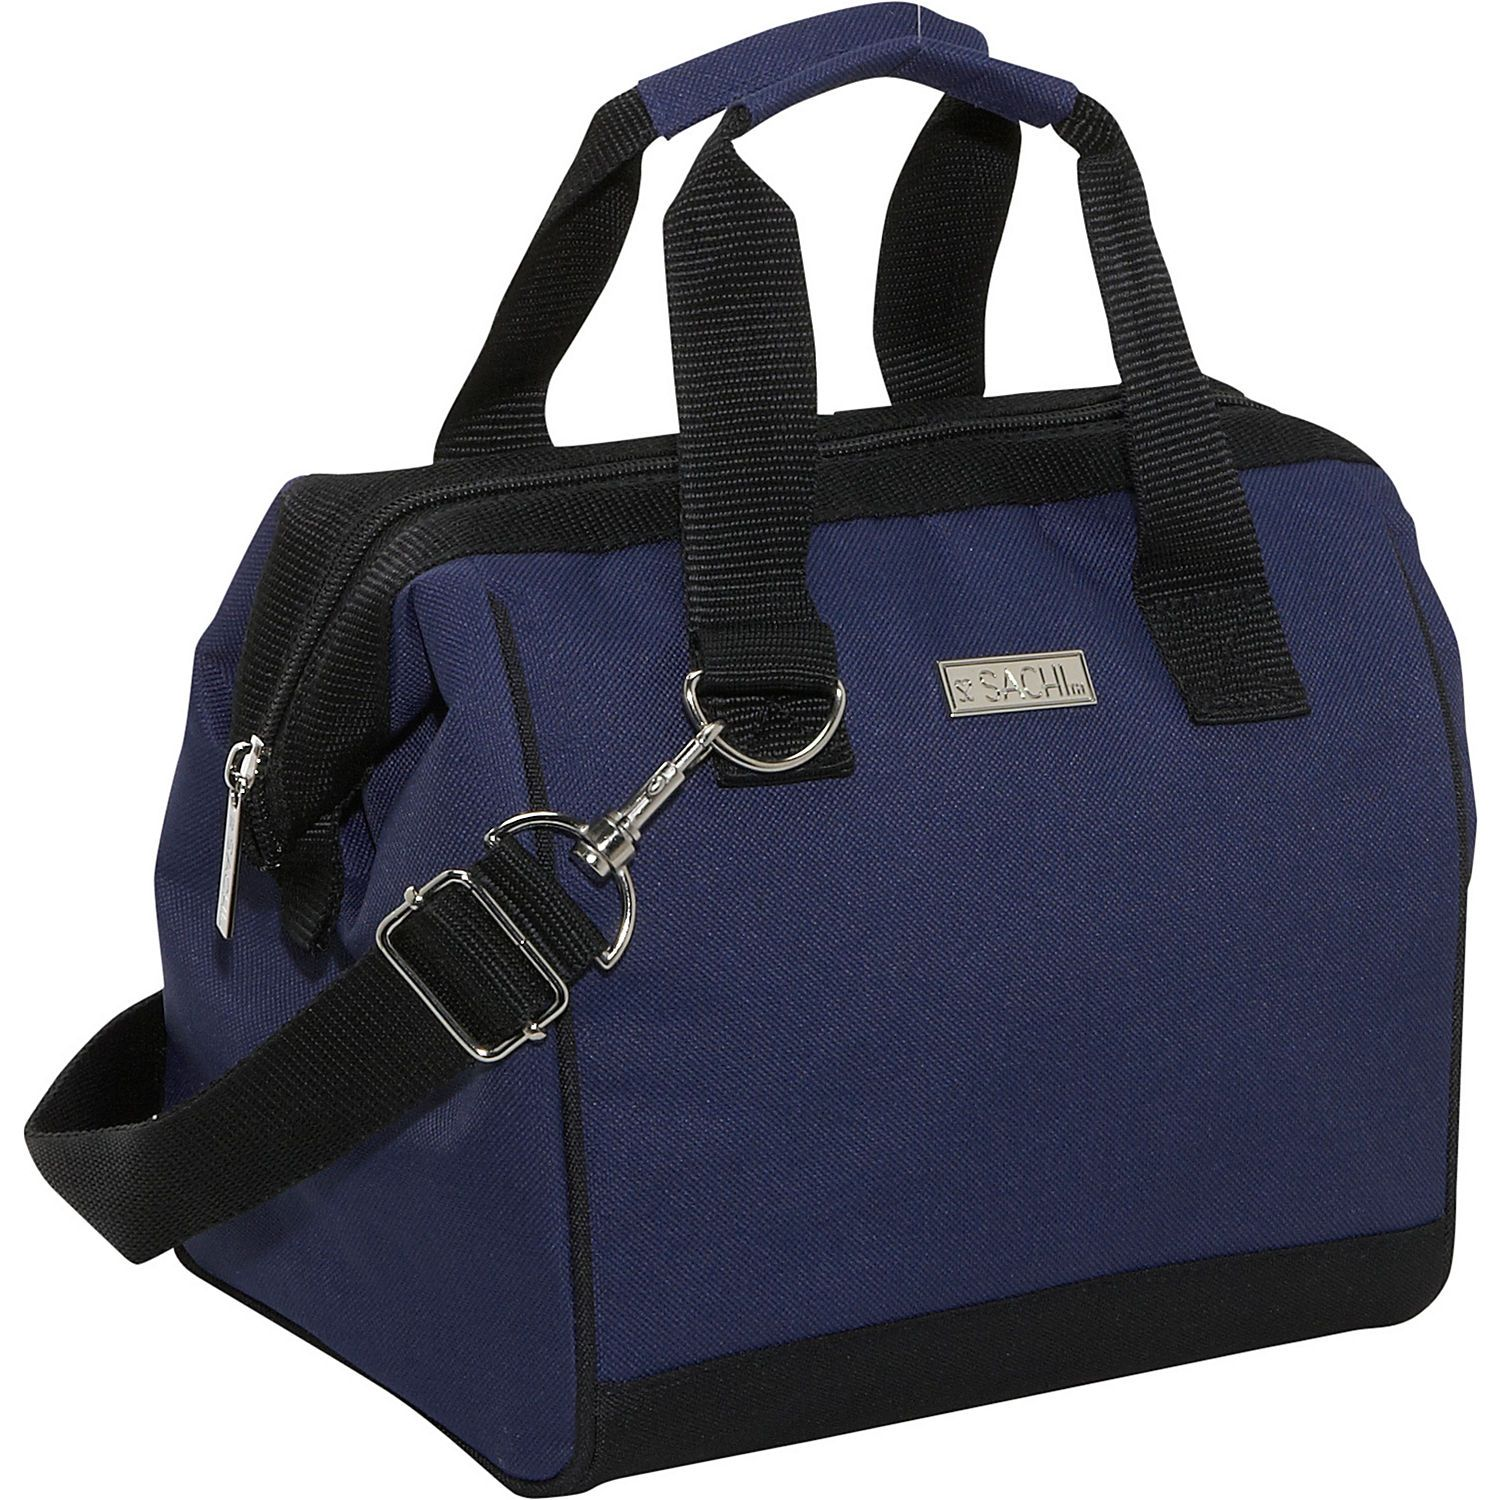 Sachi Insulated Lunch Bags Style 34 Bag - Cool Gear